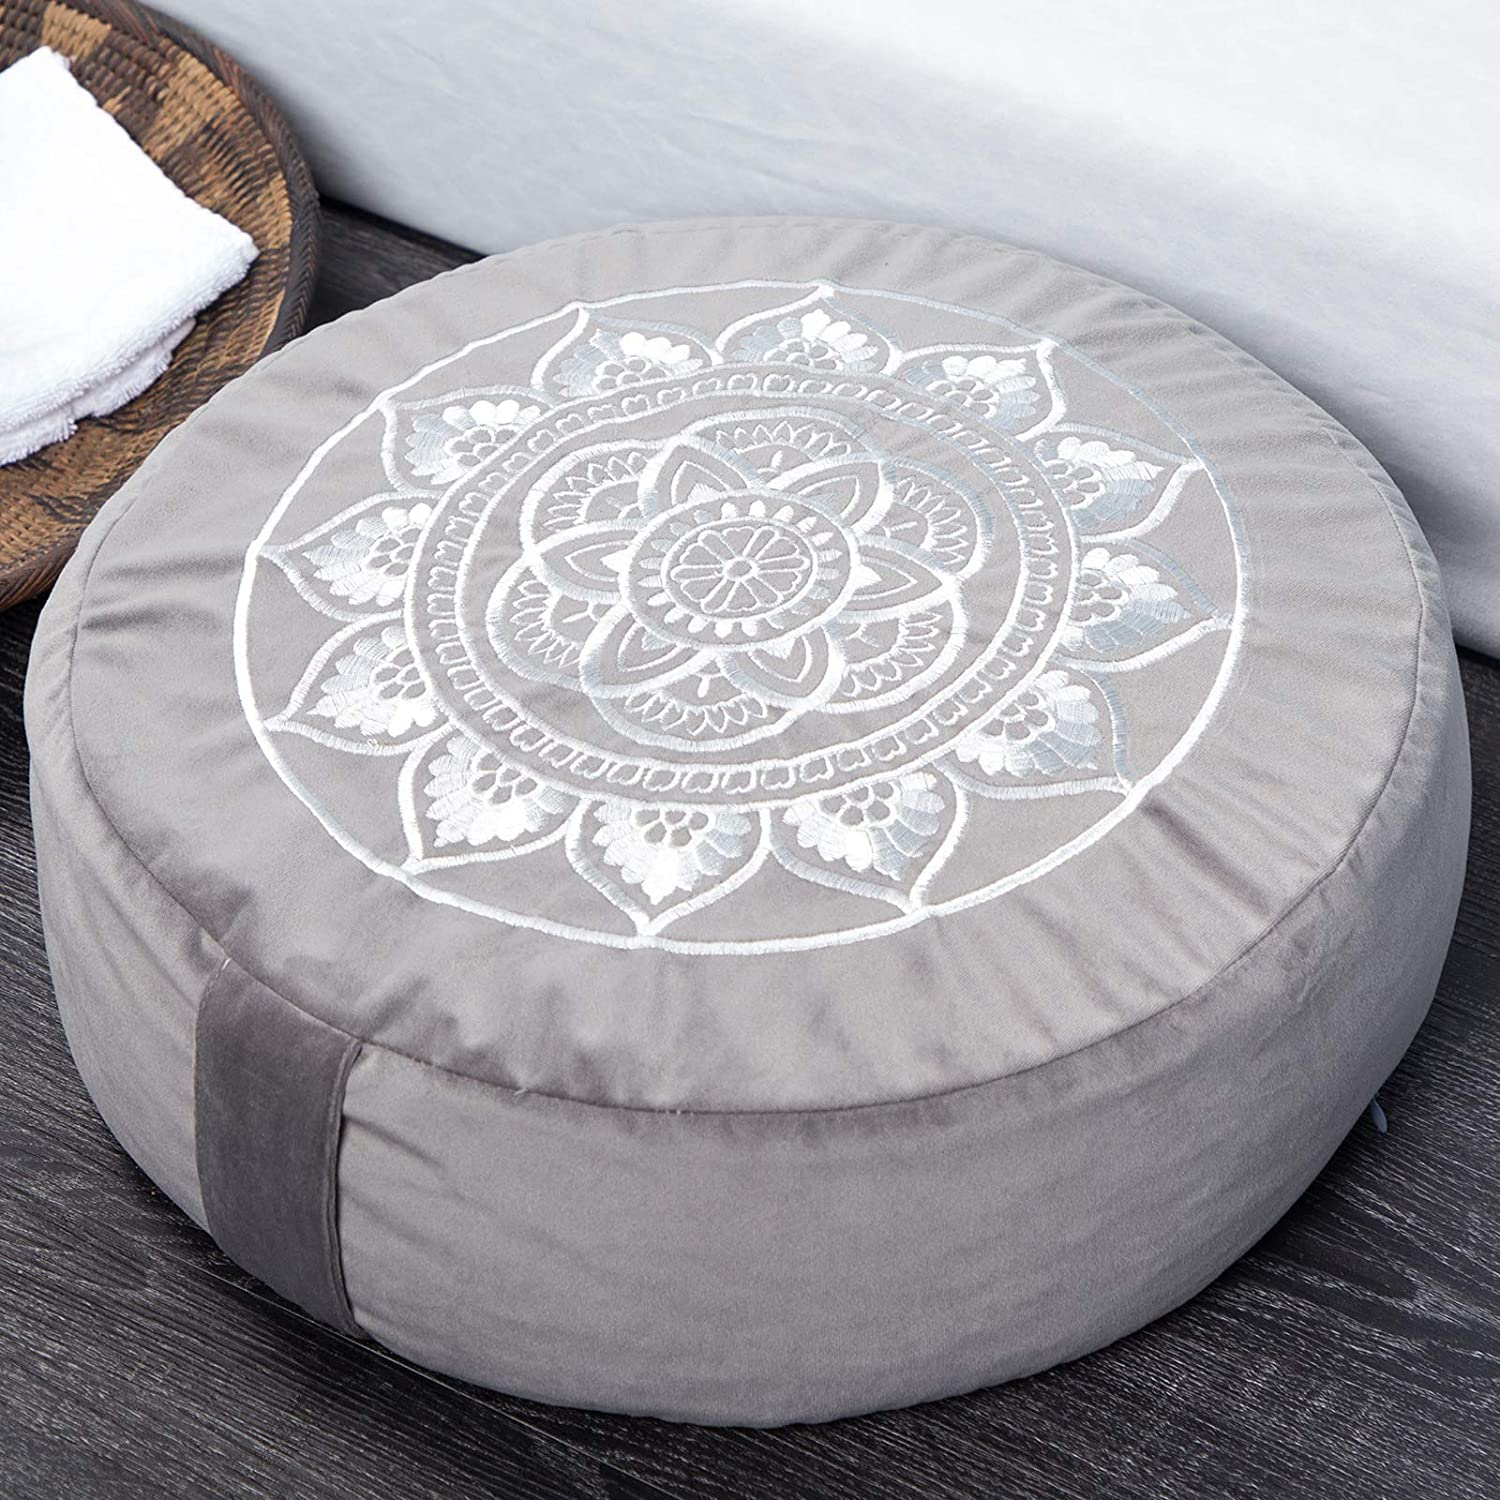 self-care-gifts-meditation-pillow